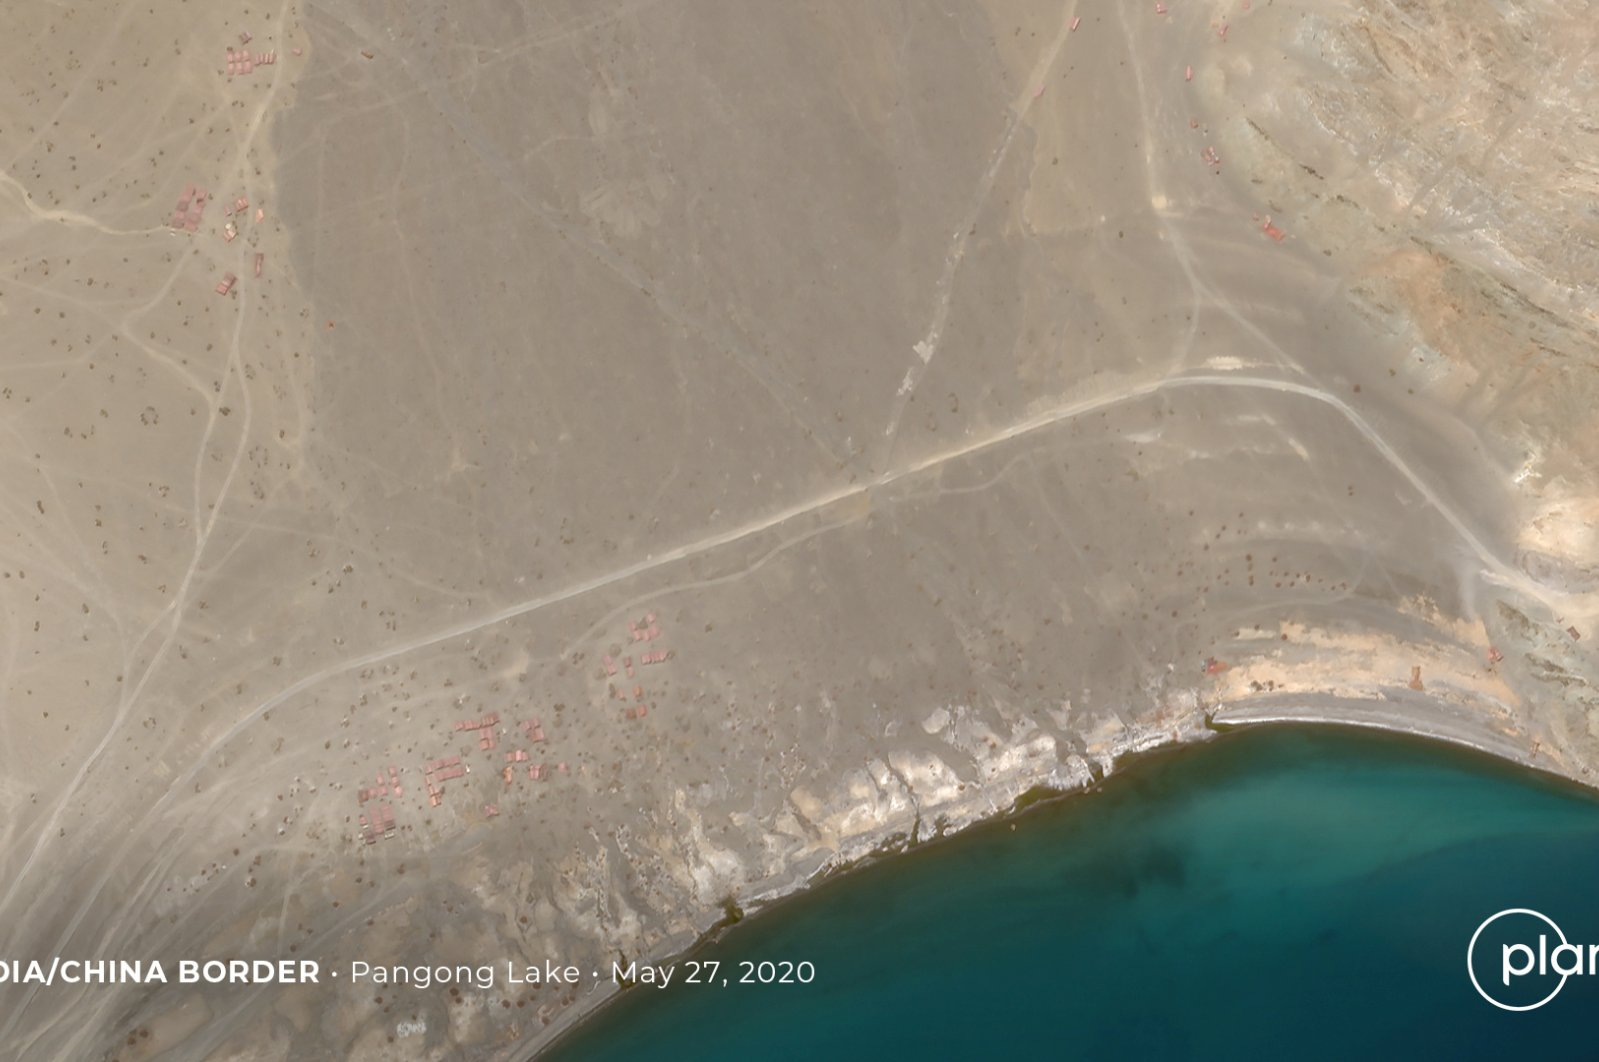 Buildup at the Line of Actual Control on the disputed border between China and India is seen in this handout satellite image of Pangong Lake, May 27, 2020. (REUTERS Photo)